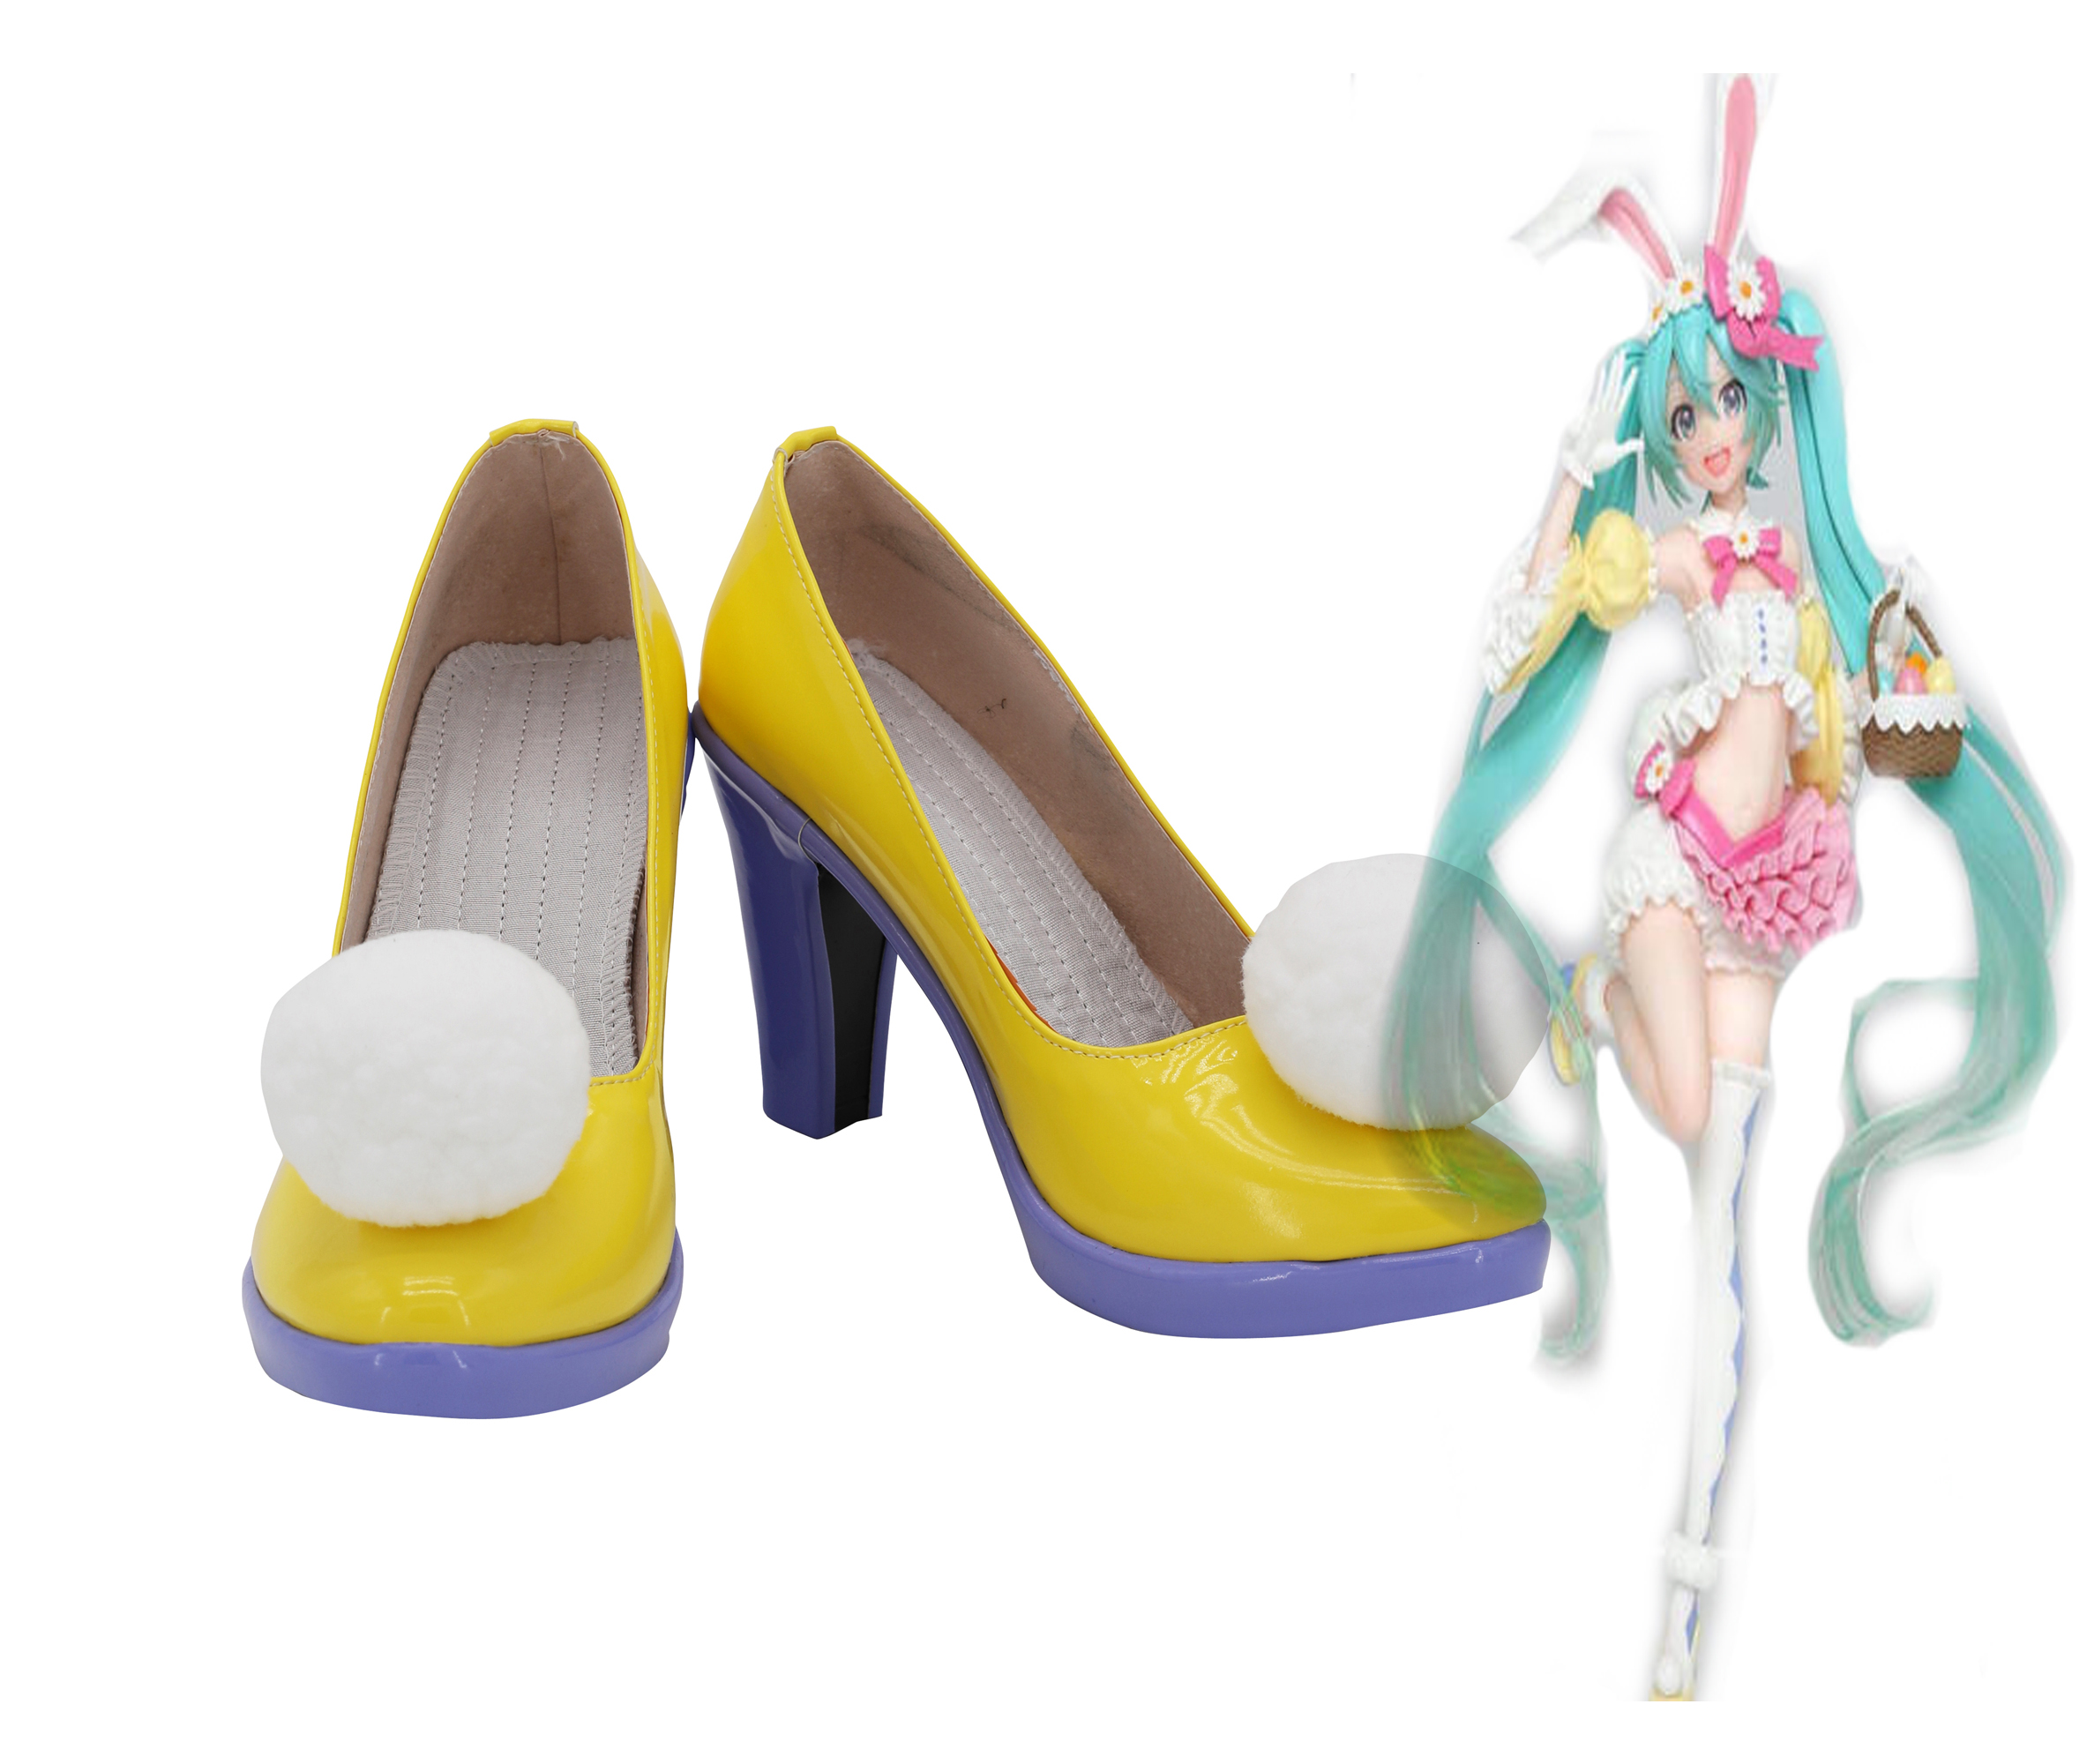 vocaloid-new-the-four-season-font-b-hatsune-b-font-miku-yellow-cosplay-shoes-high-heel-boots-halloween-party-cosplay-costume-accessory